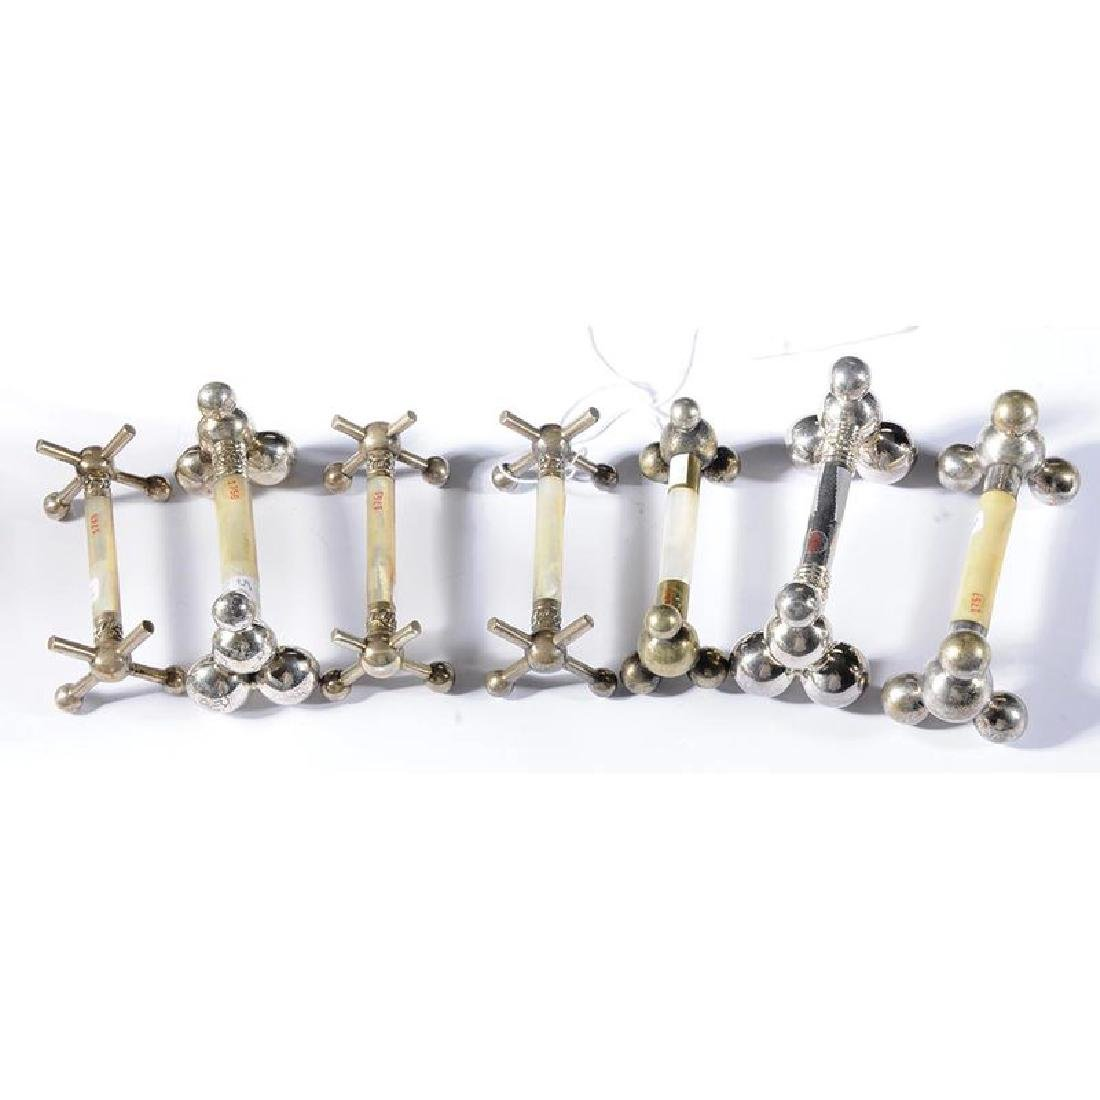 Group of Twelve Silver and Silver-Plated Knife Rests - 2